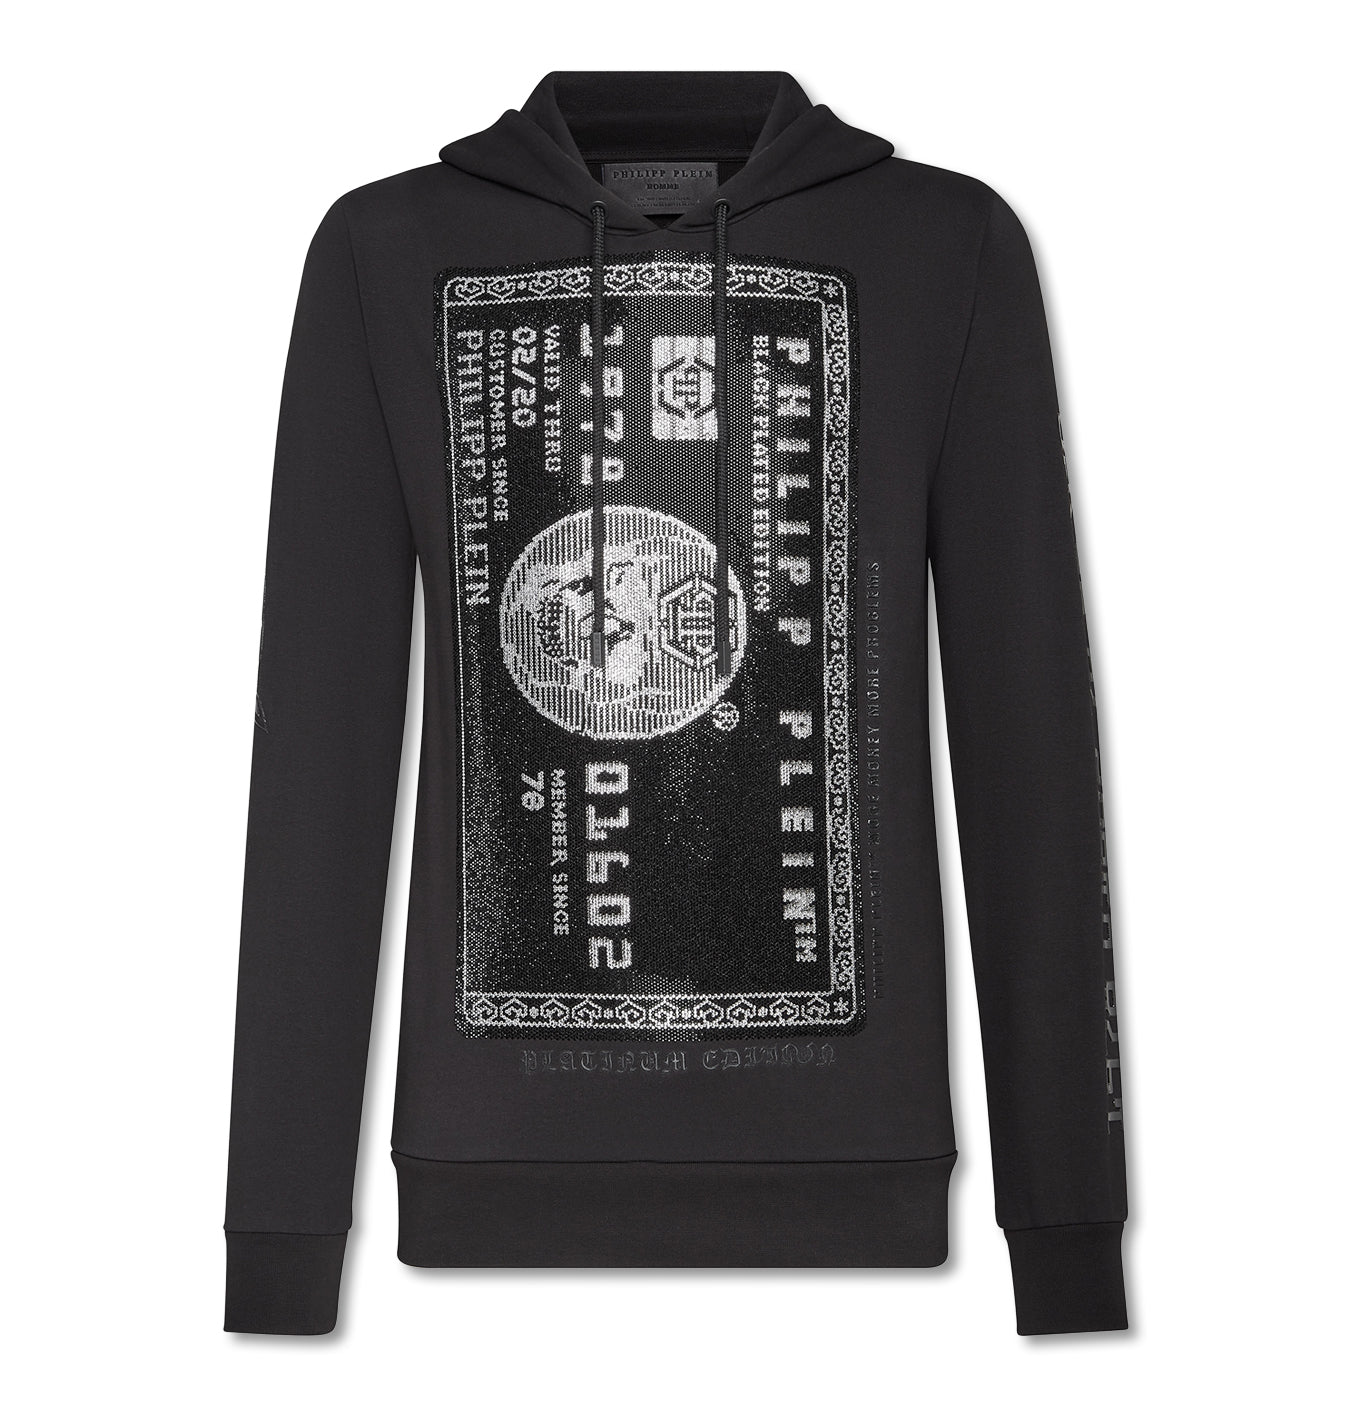 Image of   Hoodie Sweatshirt Platin Credit Card Black